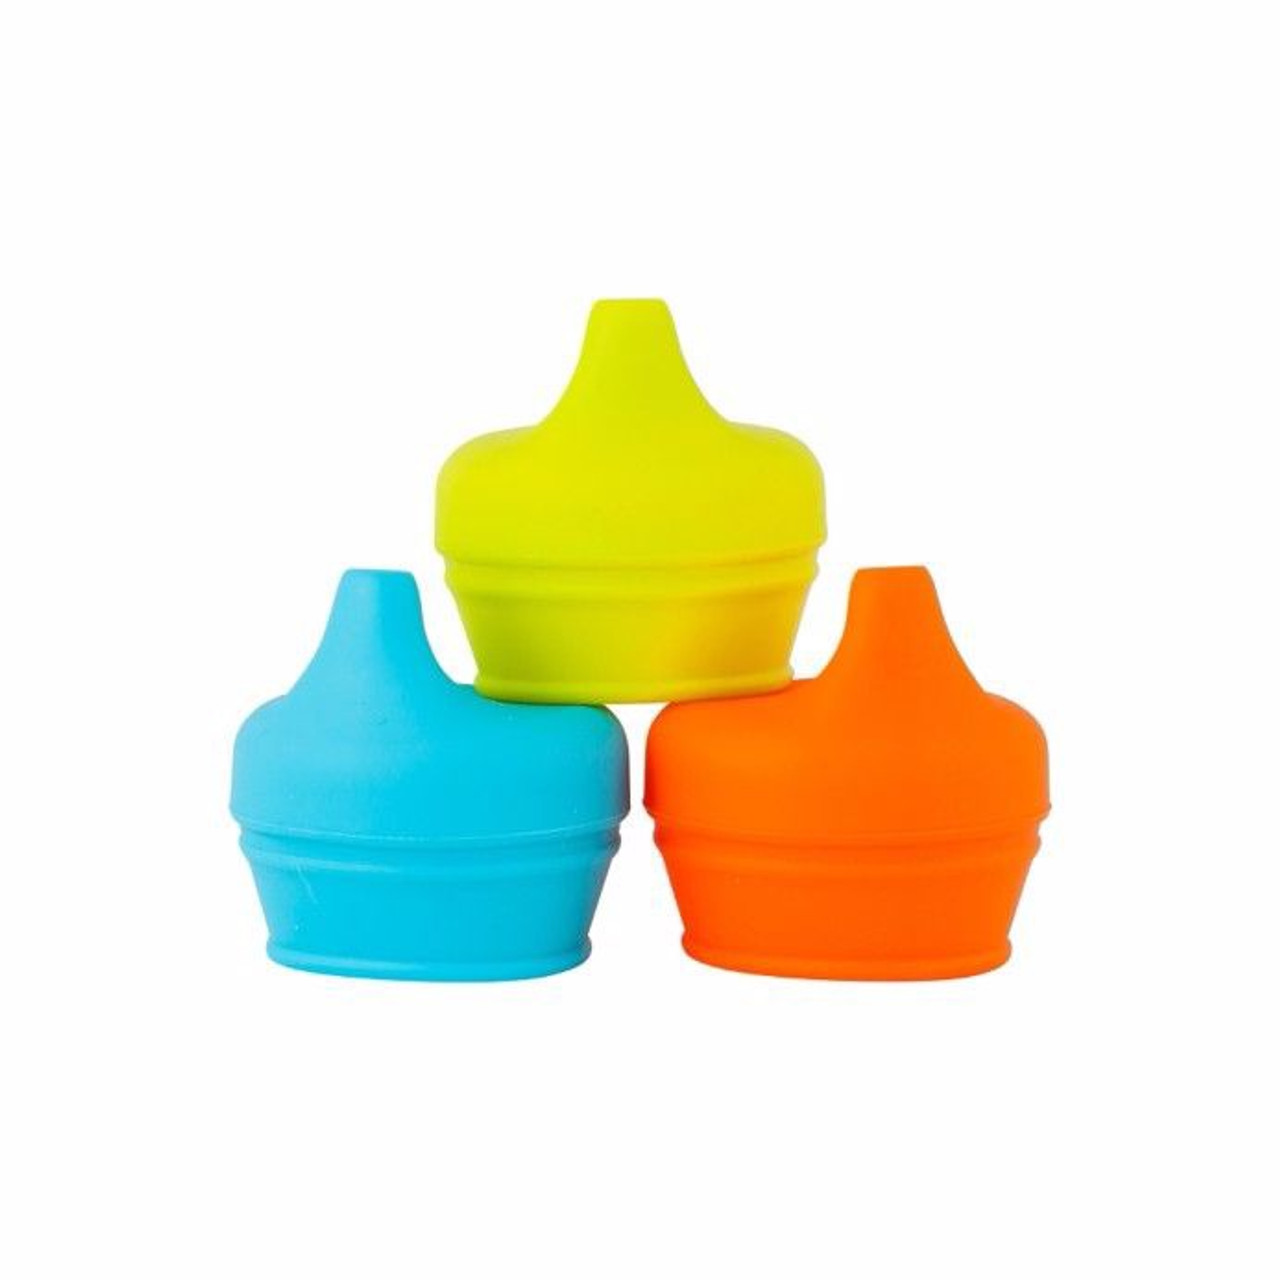 Boon Snug Spout Lid at Baby Barn Discounts Universal lid for toddler's sippy cup.